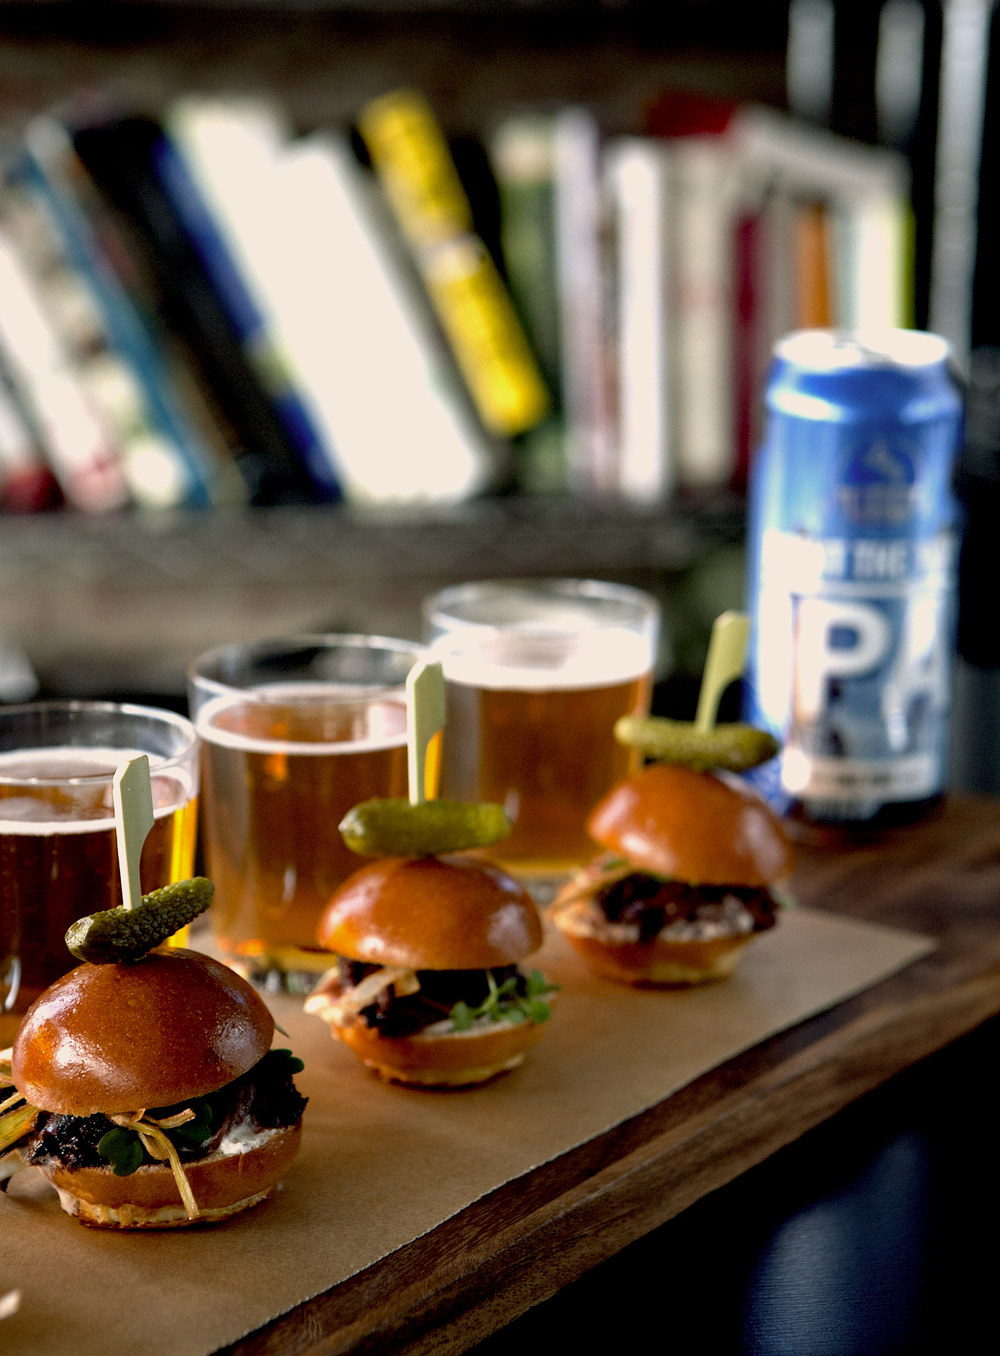 Short Rib Slider with Horseradish Cream and Fried Leeks on Brioche Buns with IPA